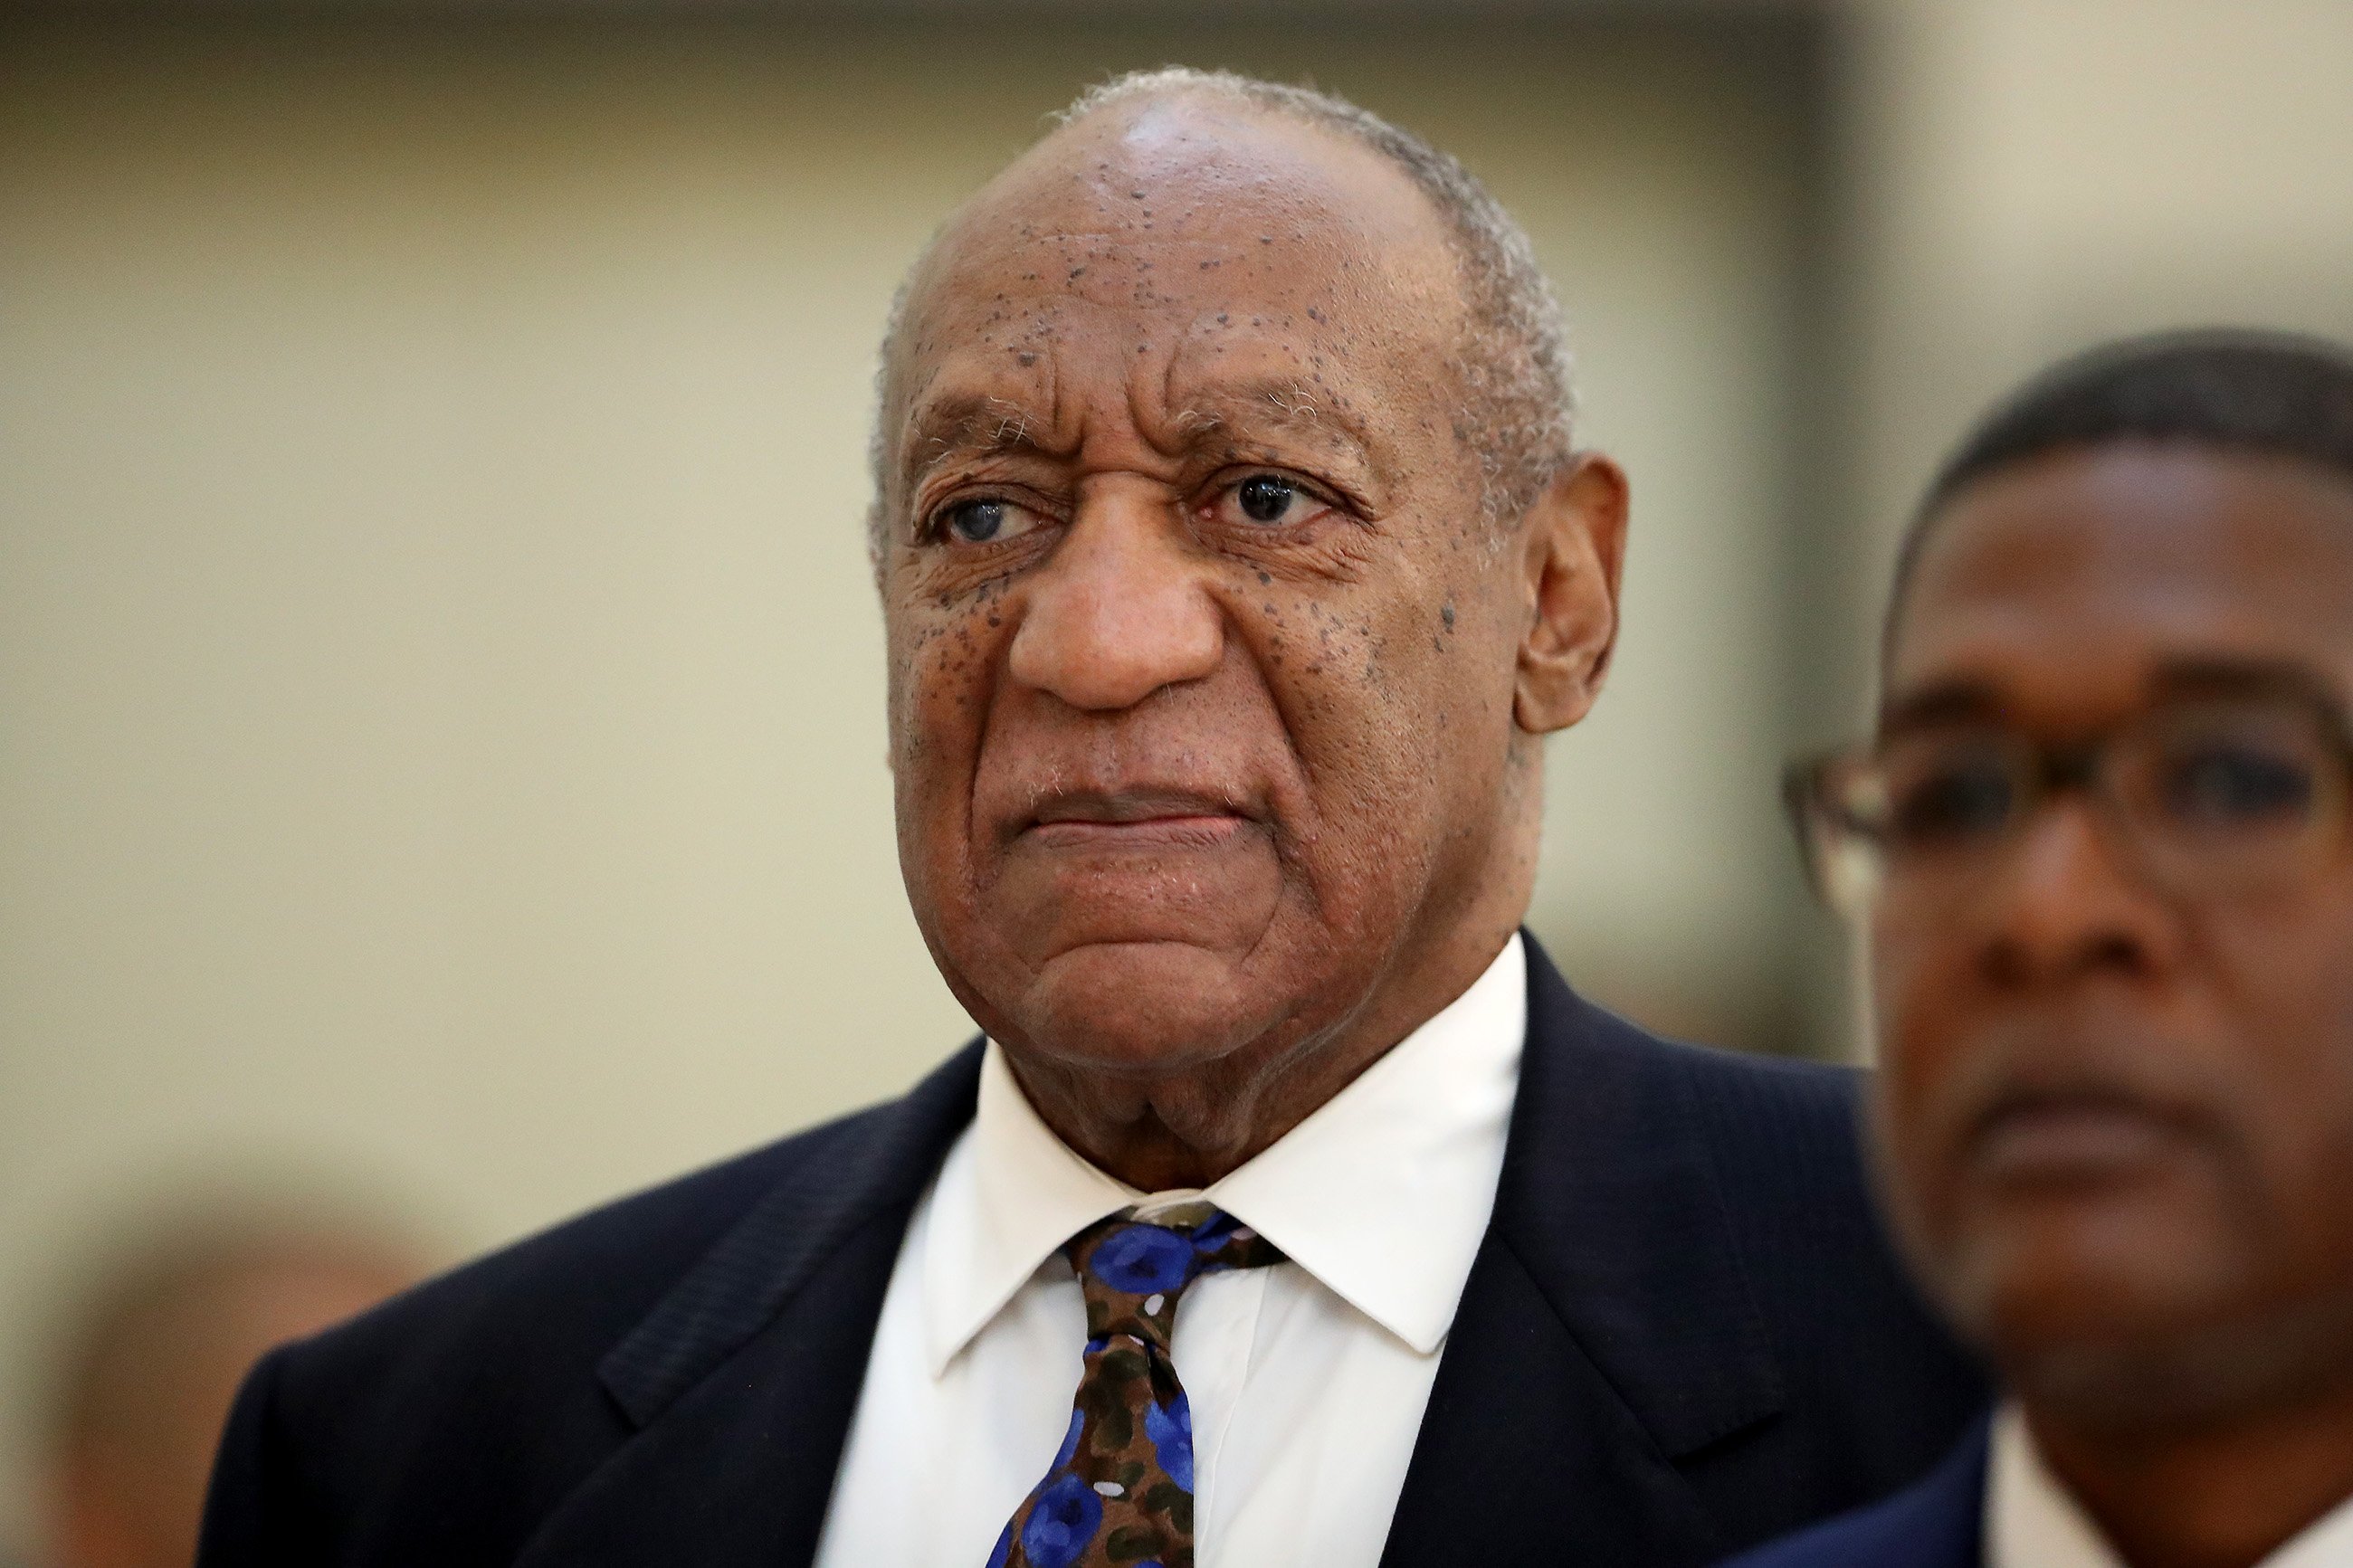 Bill Cosby Blasts His Insurance Company For Settling A Sexual Assault Lawsuit Without His Consent